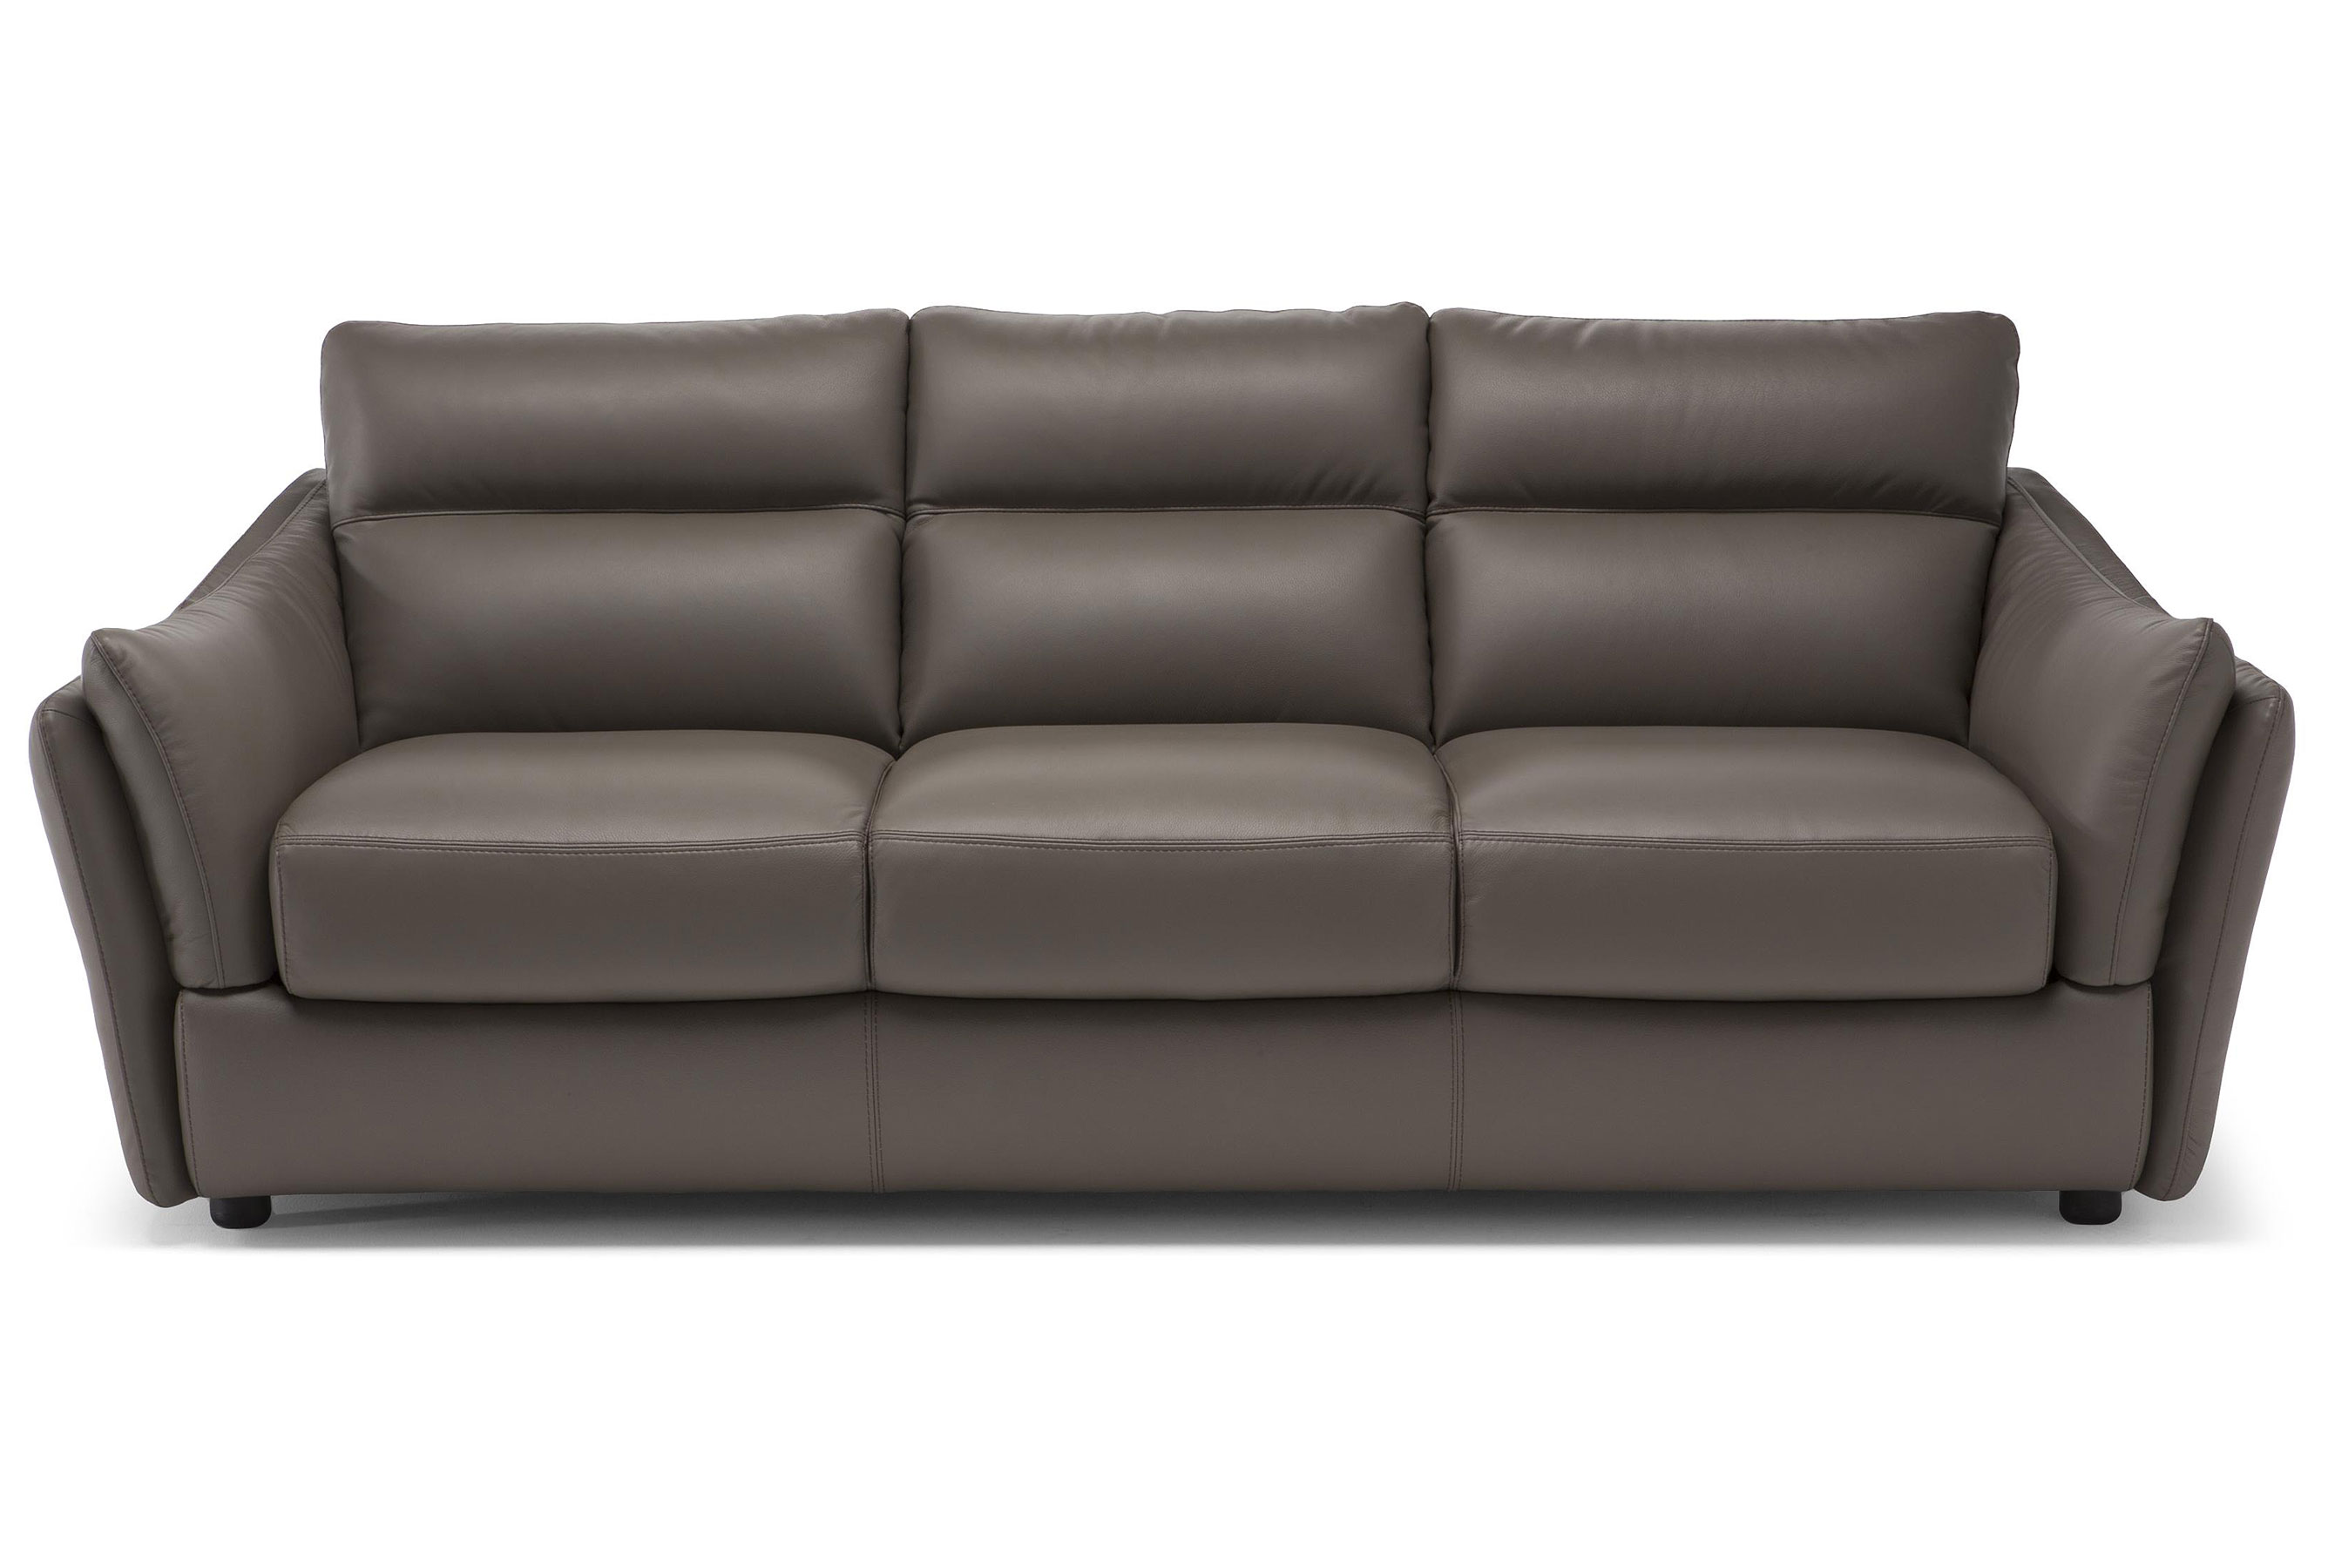 Affetto C055 Top Grain Leather Sofa By Natuzzi Editions